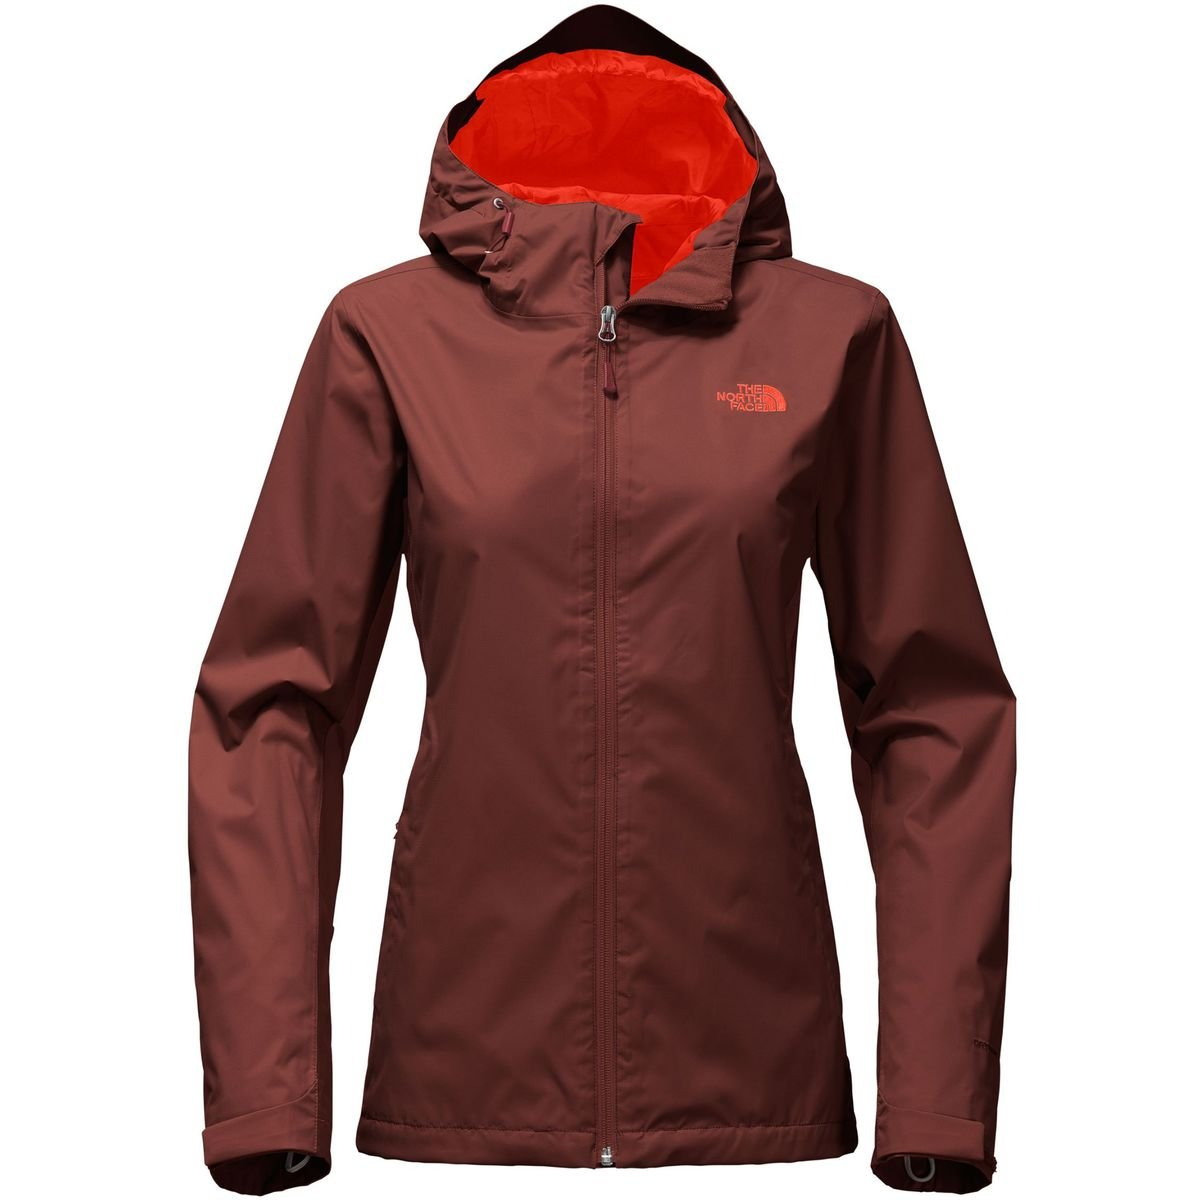 The North Face Women's Arrowood Tri-Climate Jacket - Sequoia Red Dobby - M (Past Season) by The North Face